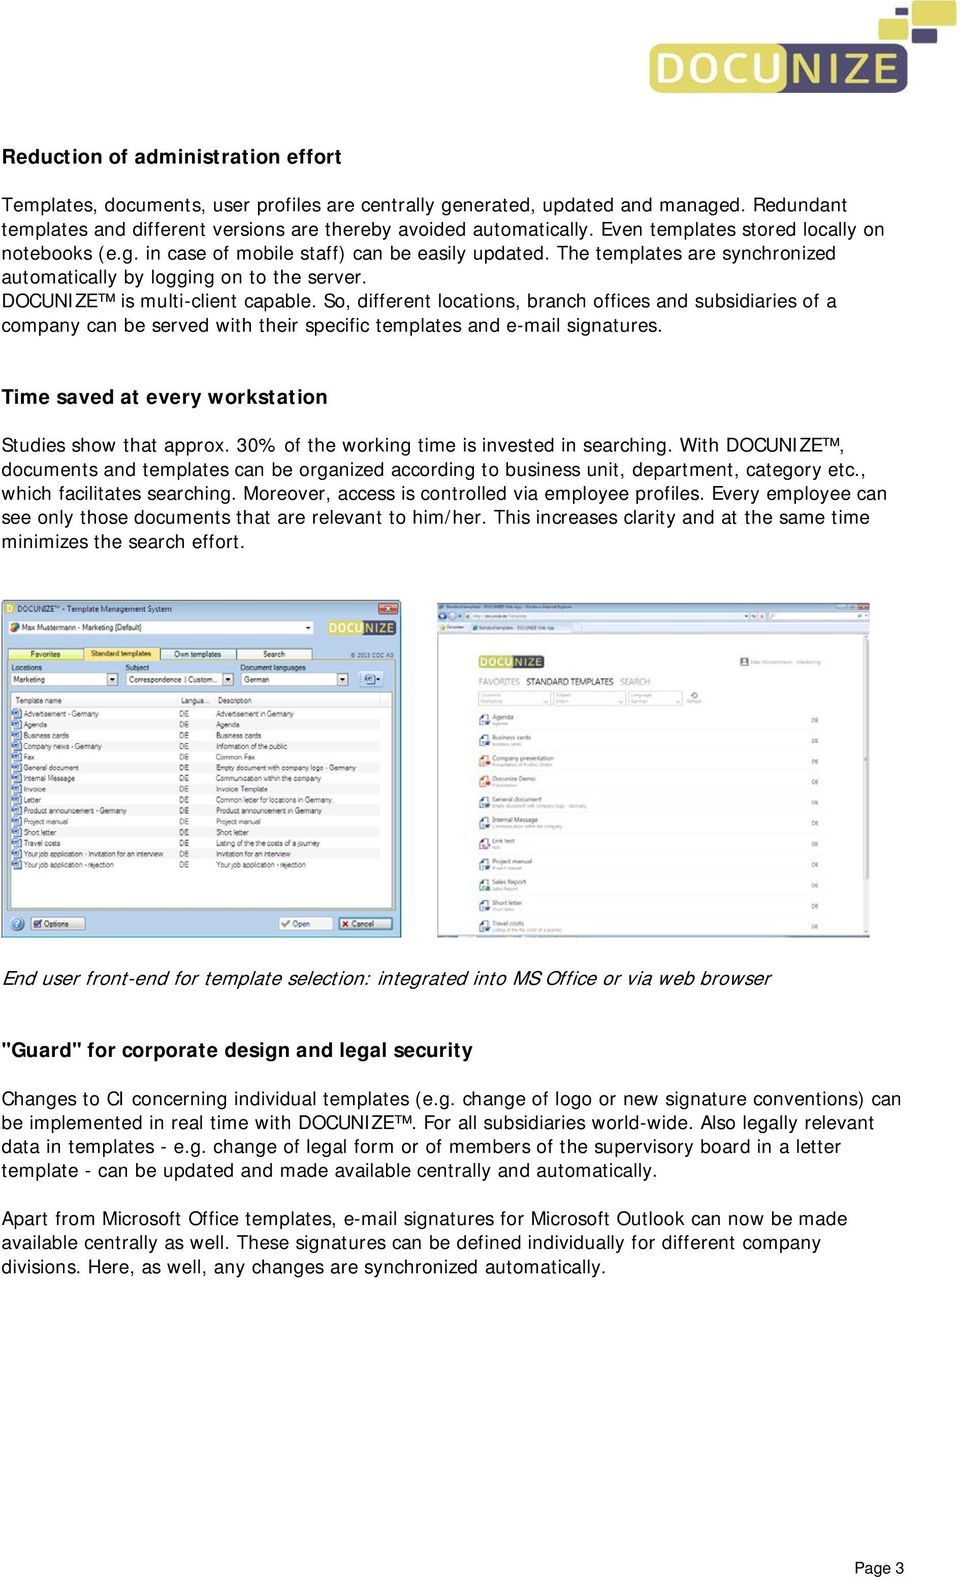 Docunize Management System For Microsoft Office Templates Pdf